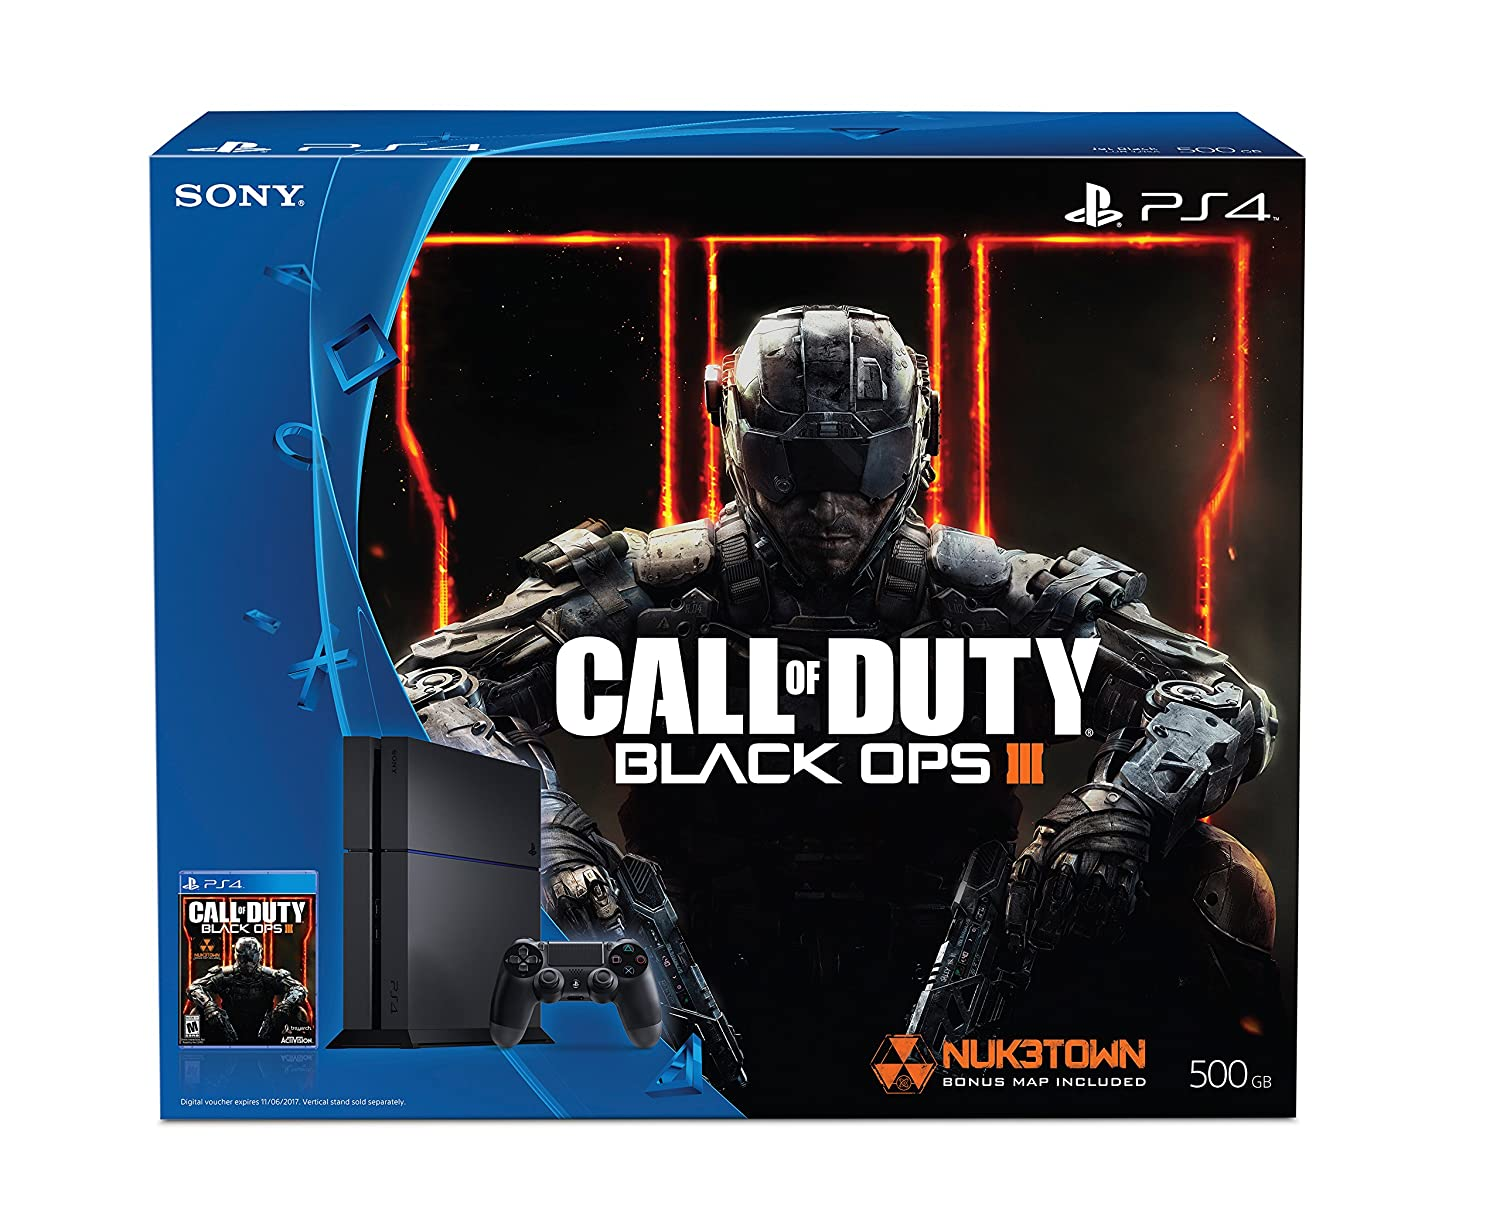 Sony PlayStation 4 500GB Bundle with Call of Duty Black Ops III - Black